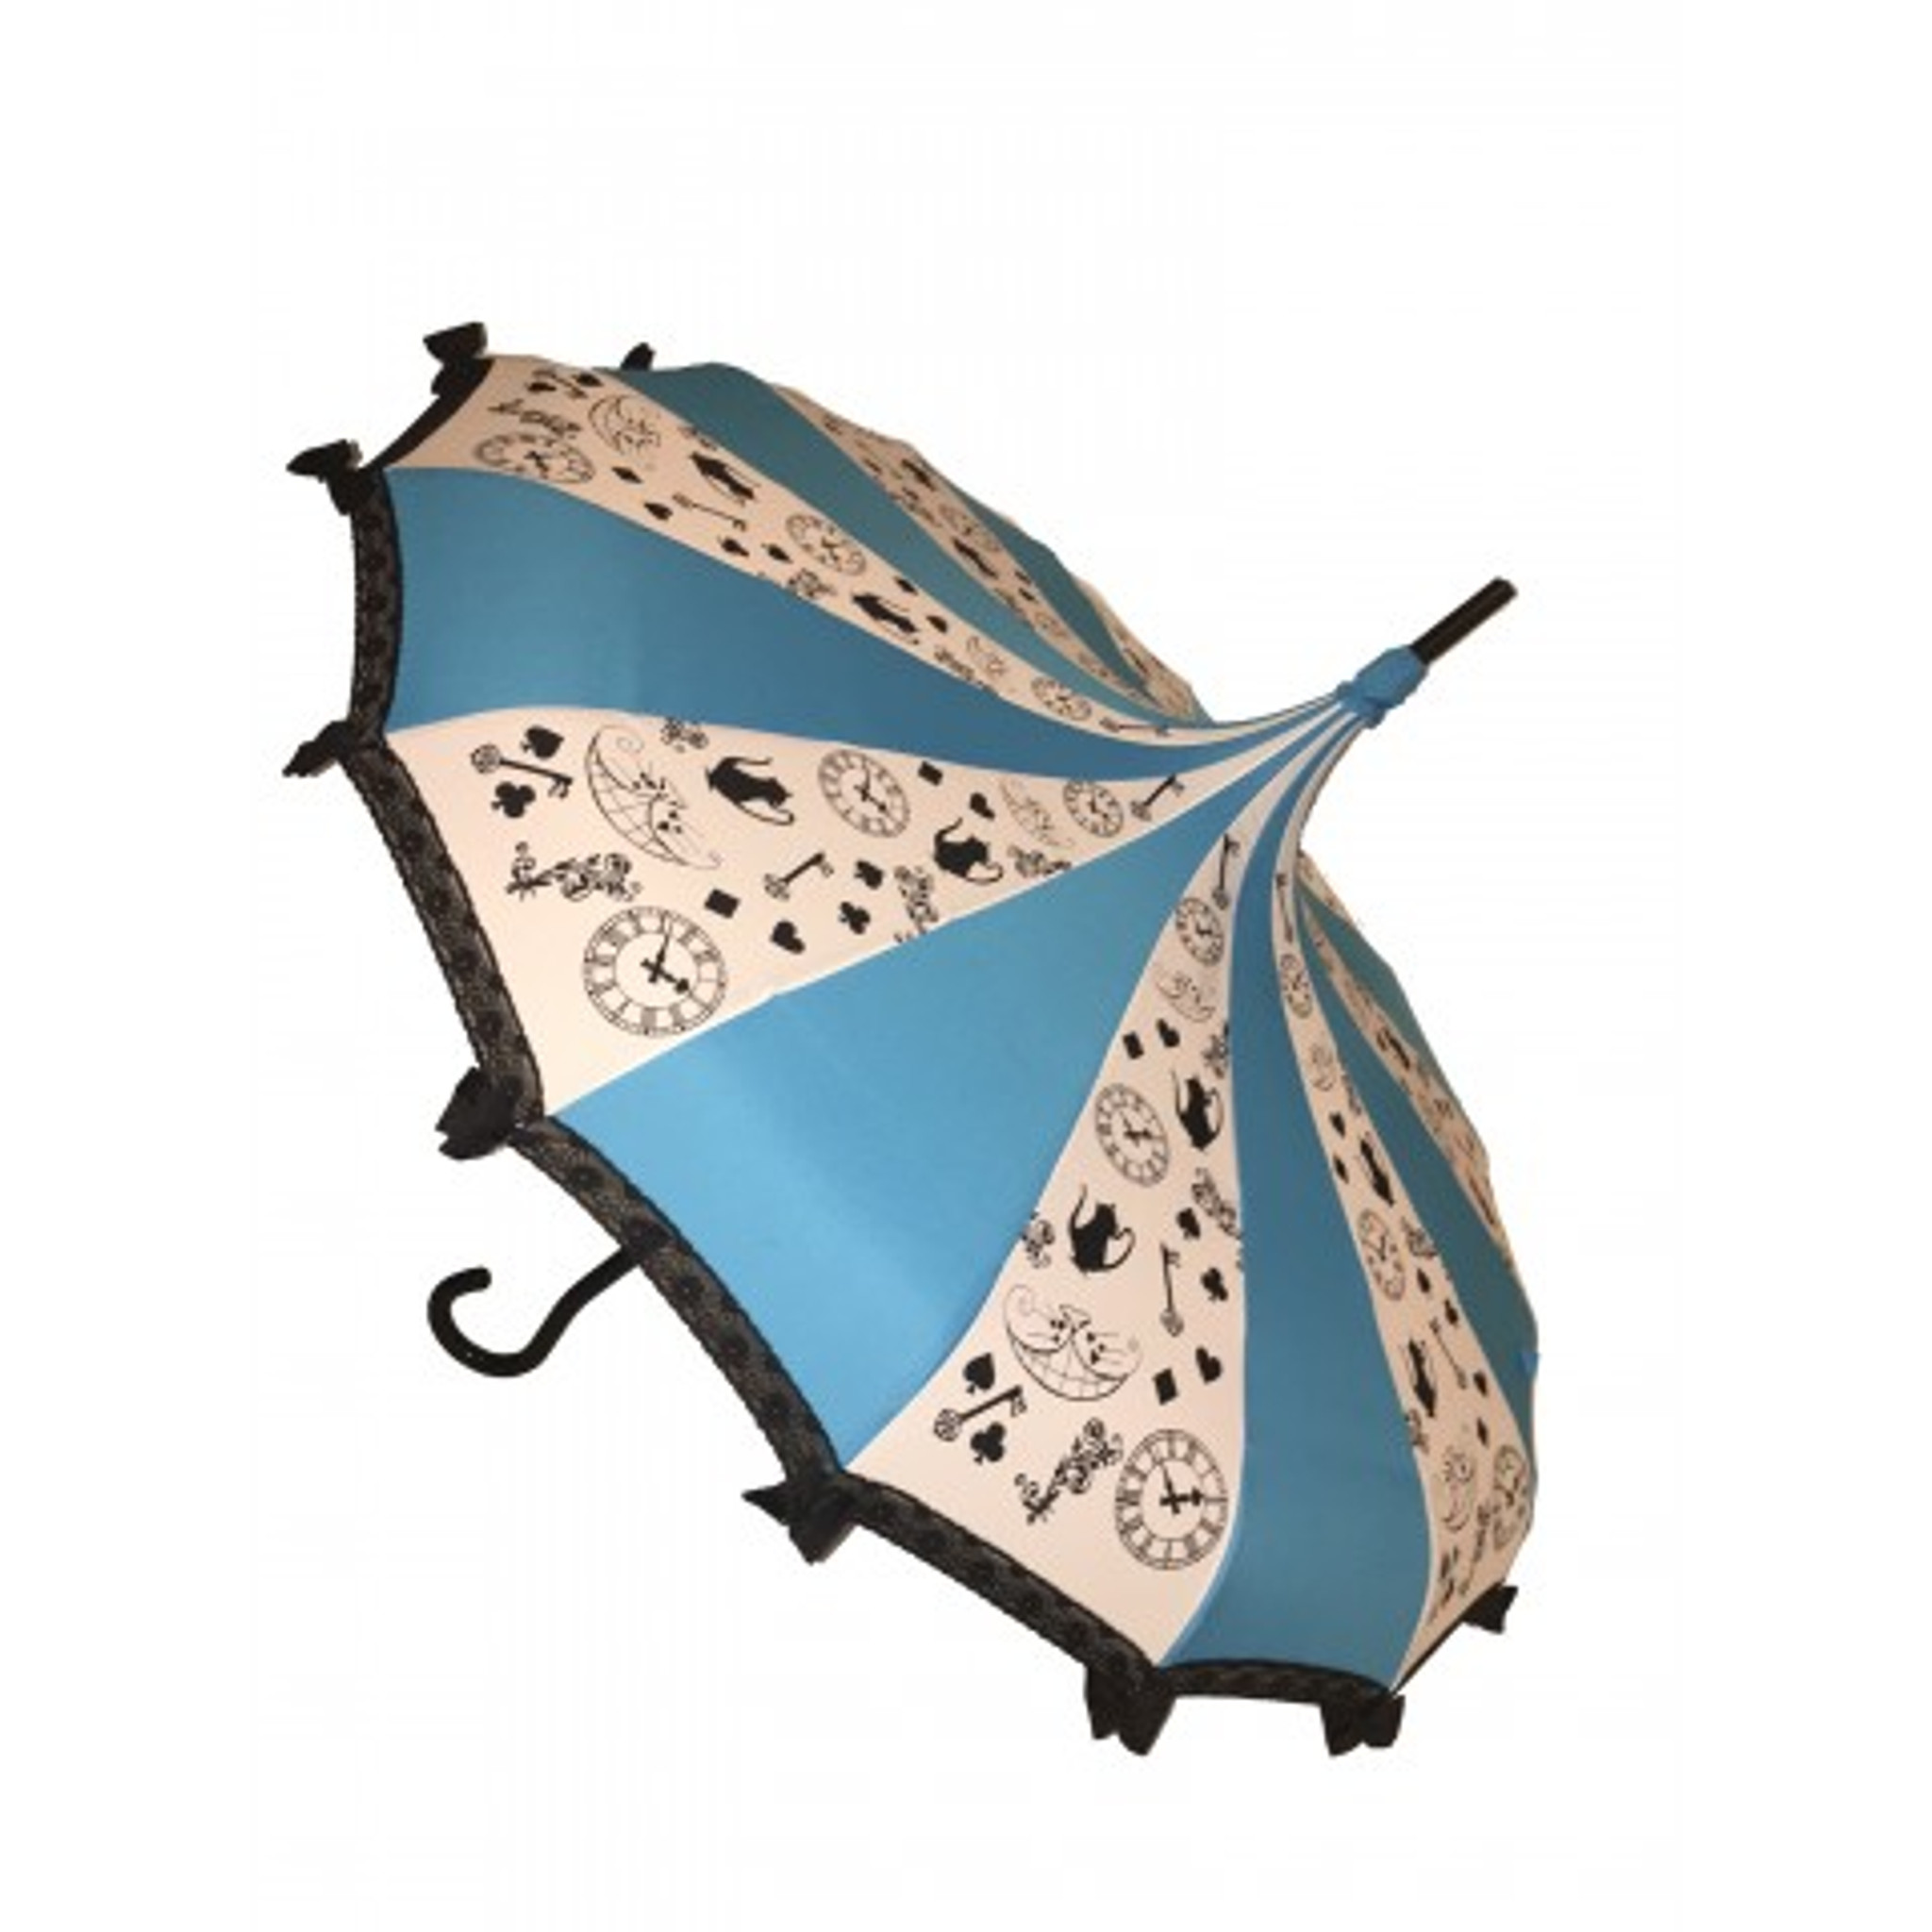 Curious Girl Umbrella - Blue, white and black